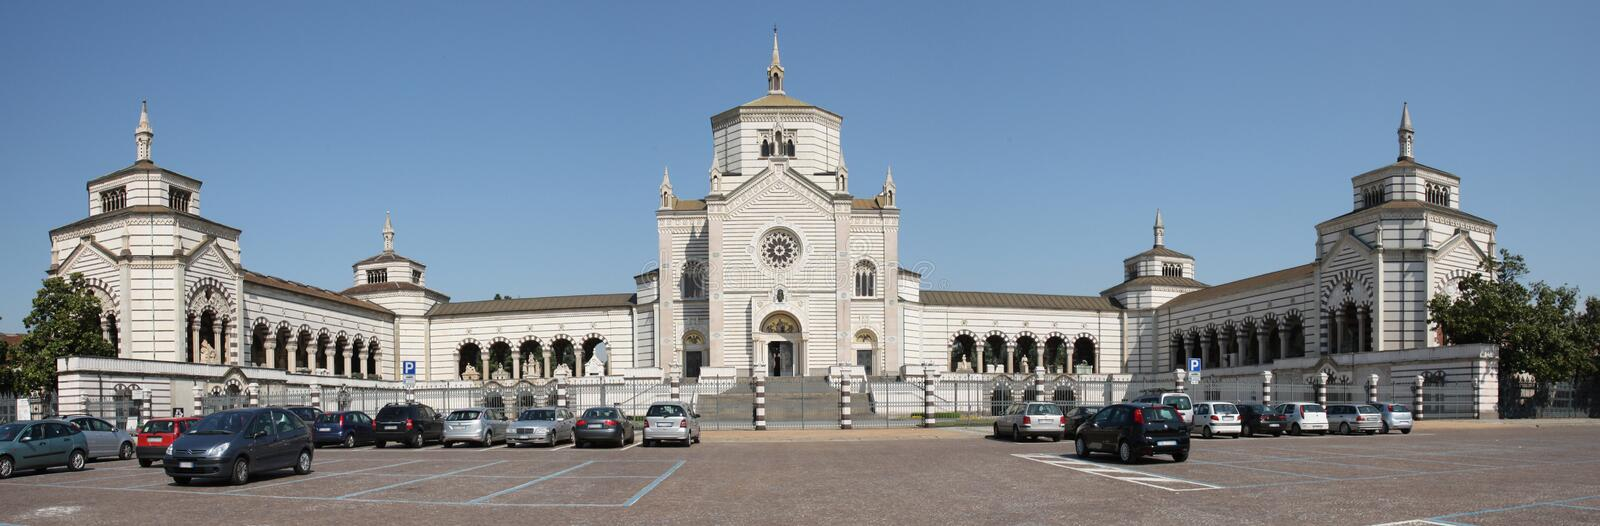 Cimitero Monumentale Milano Panorama picture royalty free stock photography